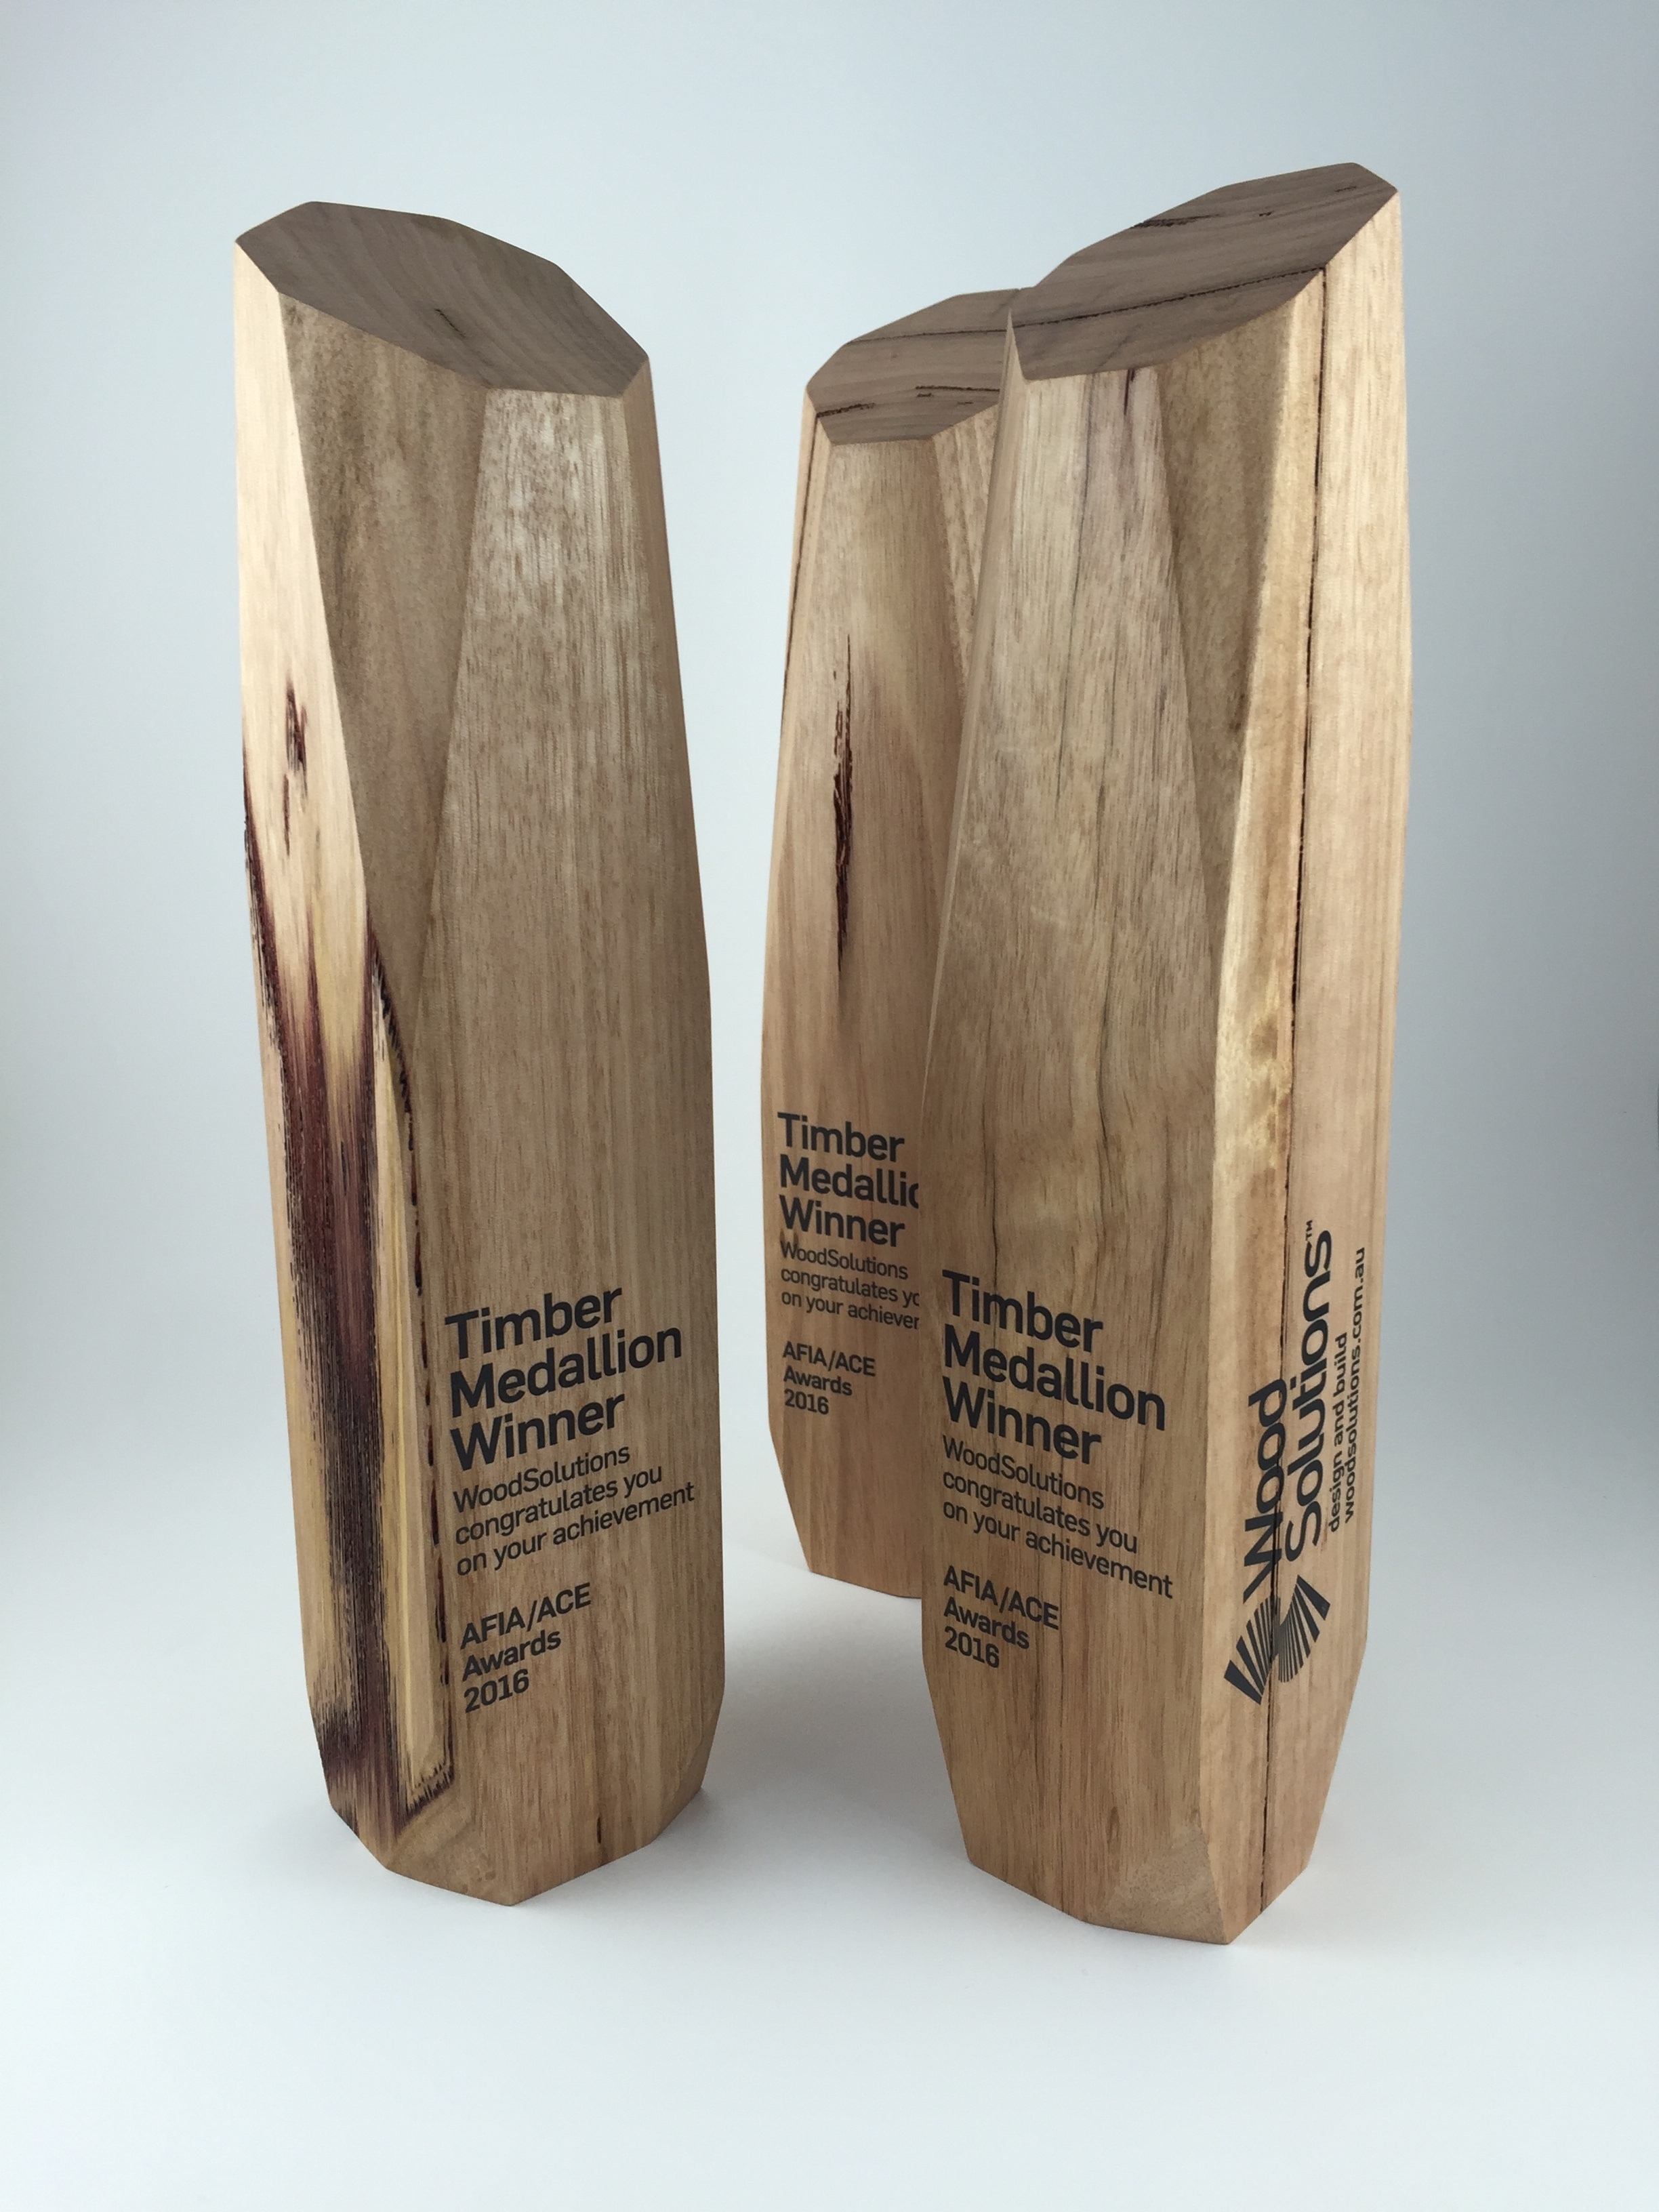 Wood-solutions-timber-eco-trophy-awards-03.jpg